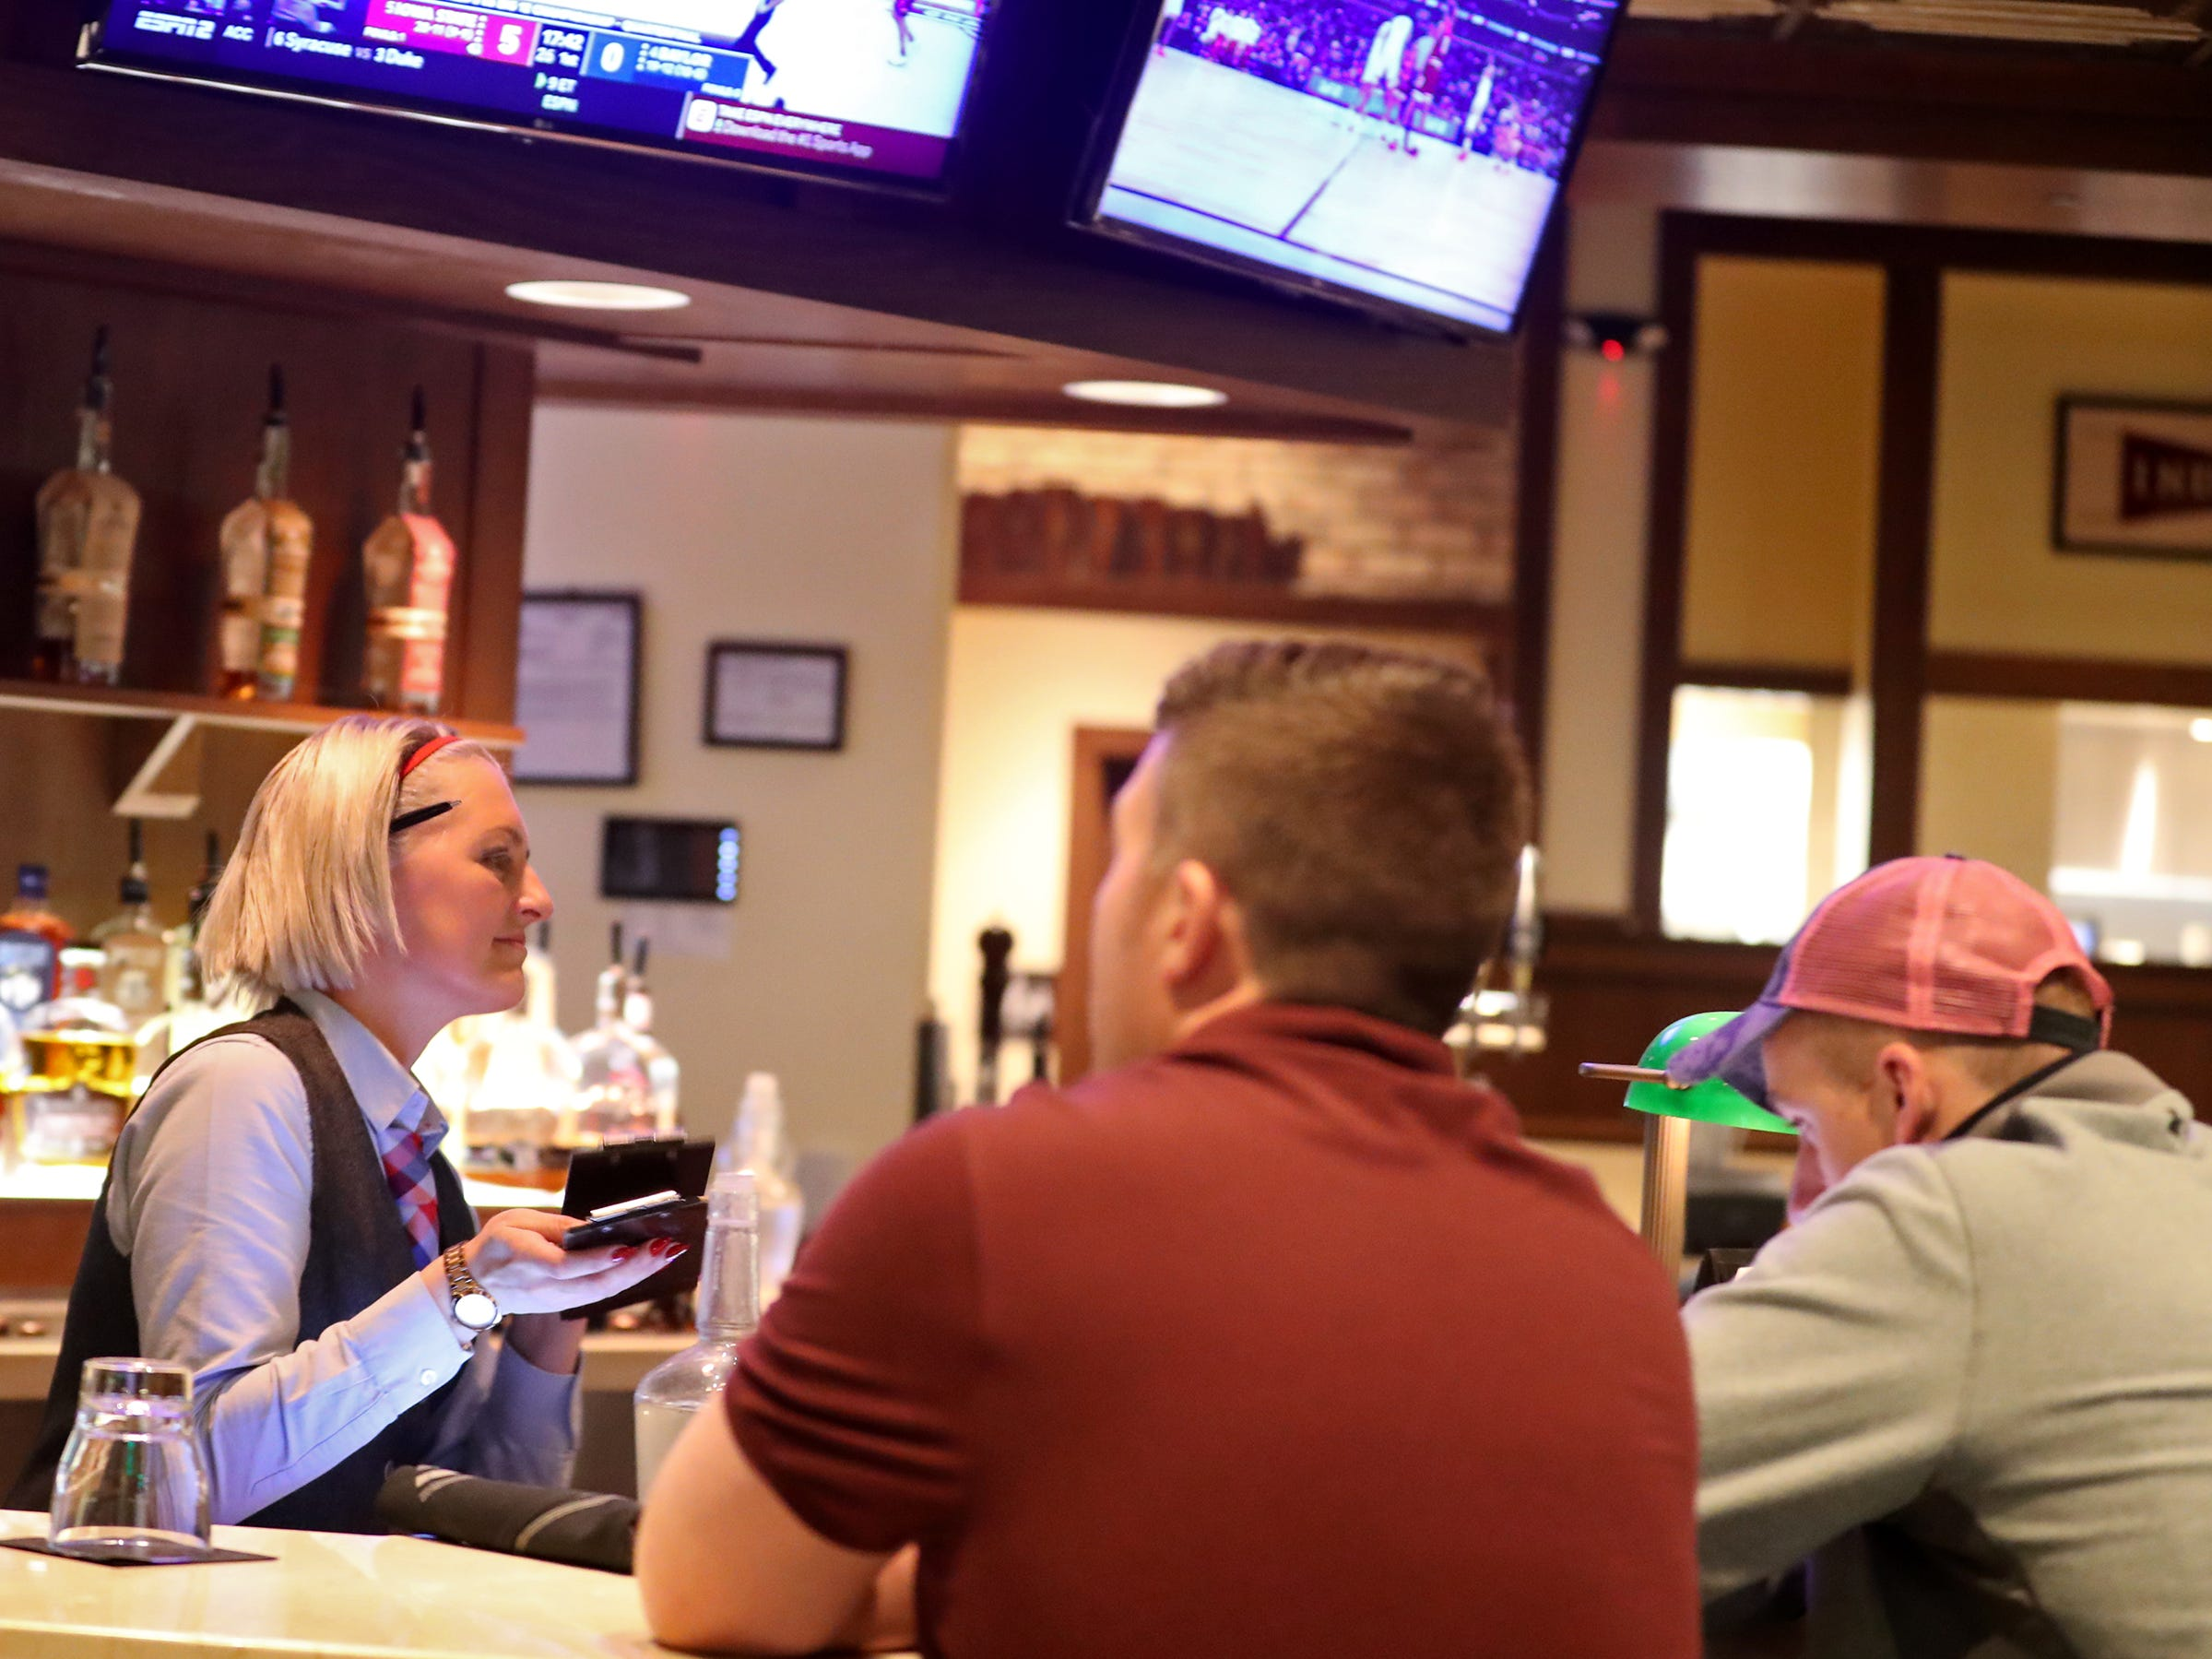 Roxanne Green helps customers at the bar at Burger Study, Thursday, March 14, 2019.  The restaurant uses Snapshyft to help supplement their staffing during peak times.